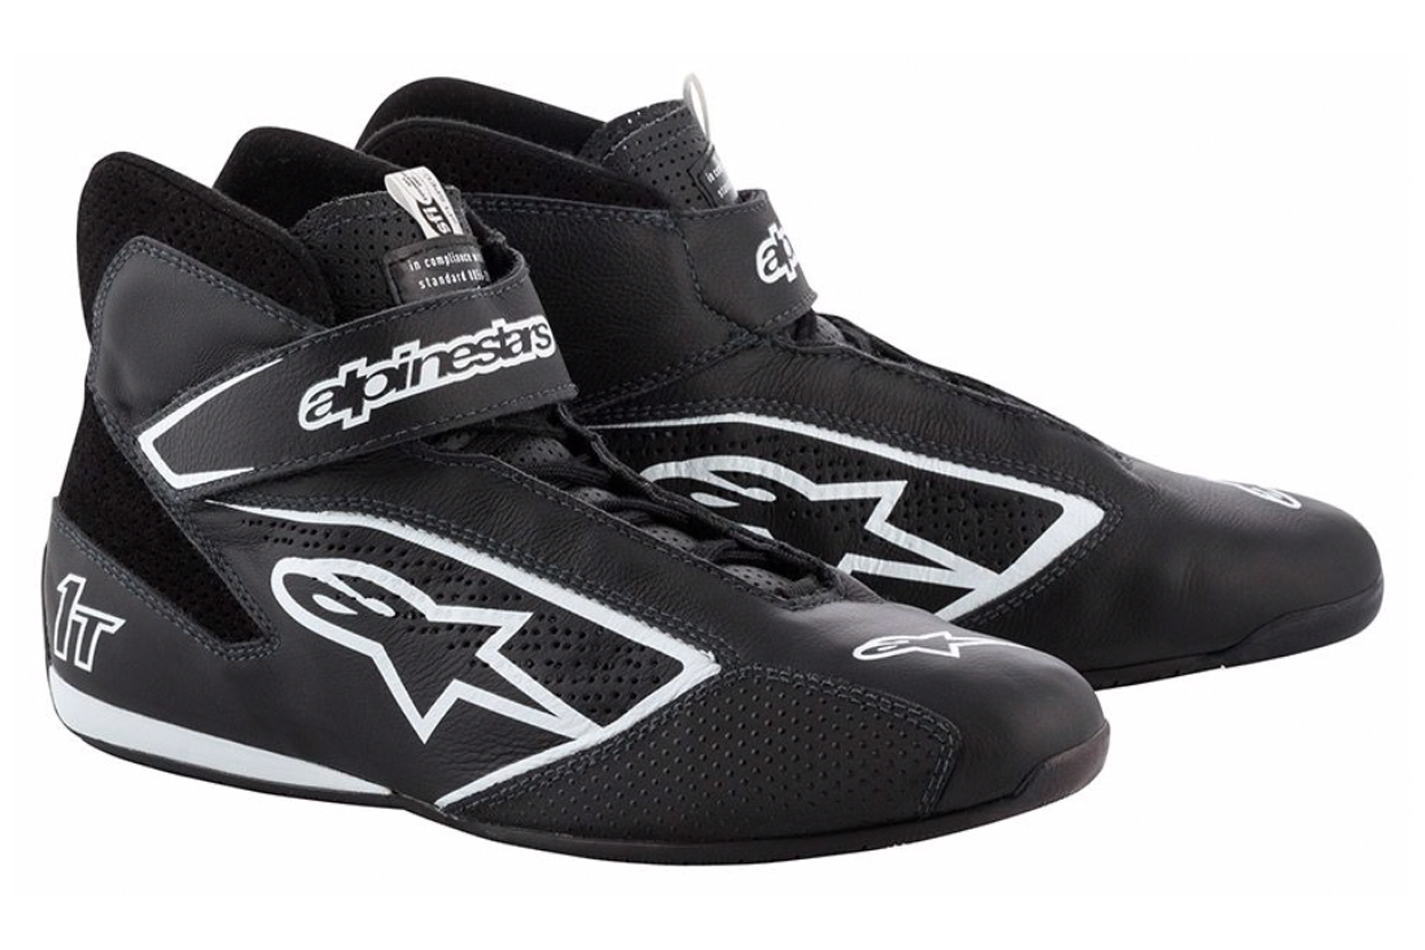 Alpinestars USA 2710119-12B-9.5 Shoe, Tech 1-T, Driving, Mid-Top, SFI 3.3, FIA Approved, Leather Outer, Nomex Inner, Black, Size 9.5, Pair